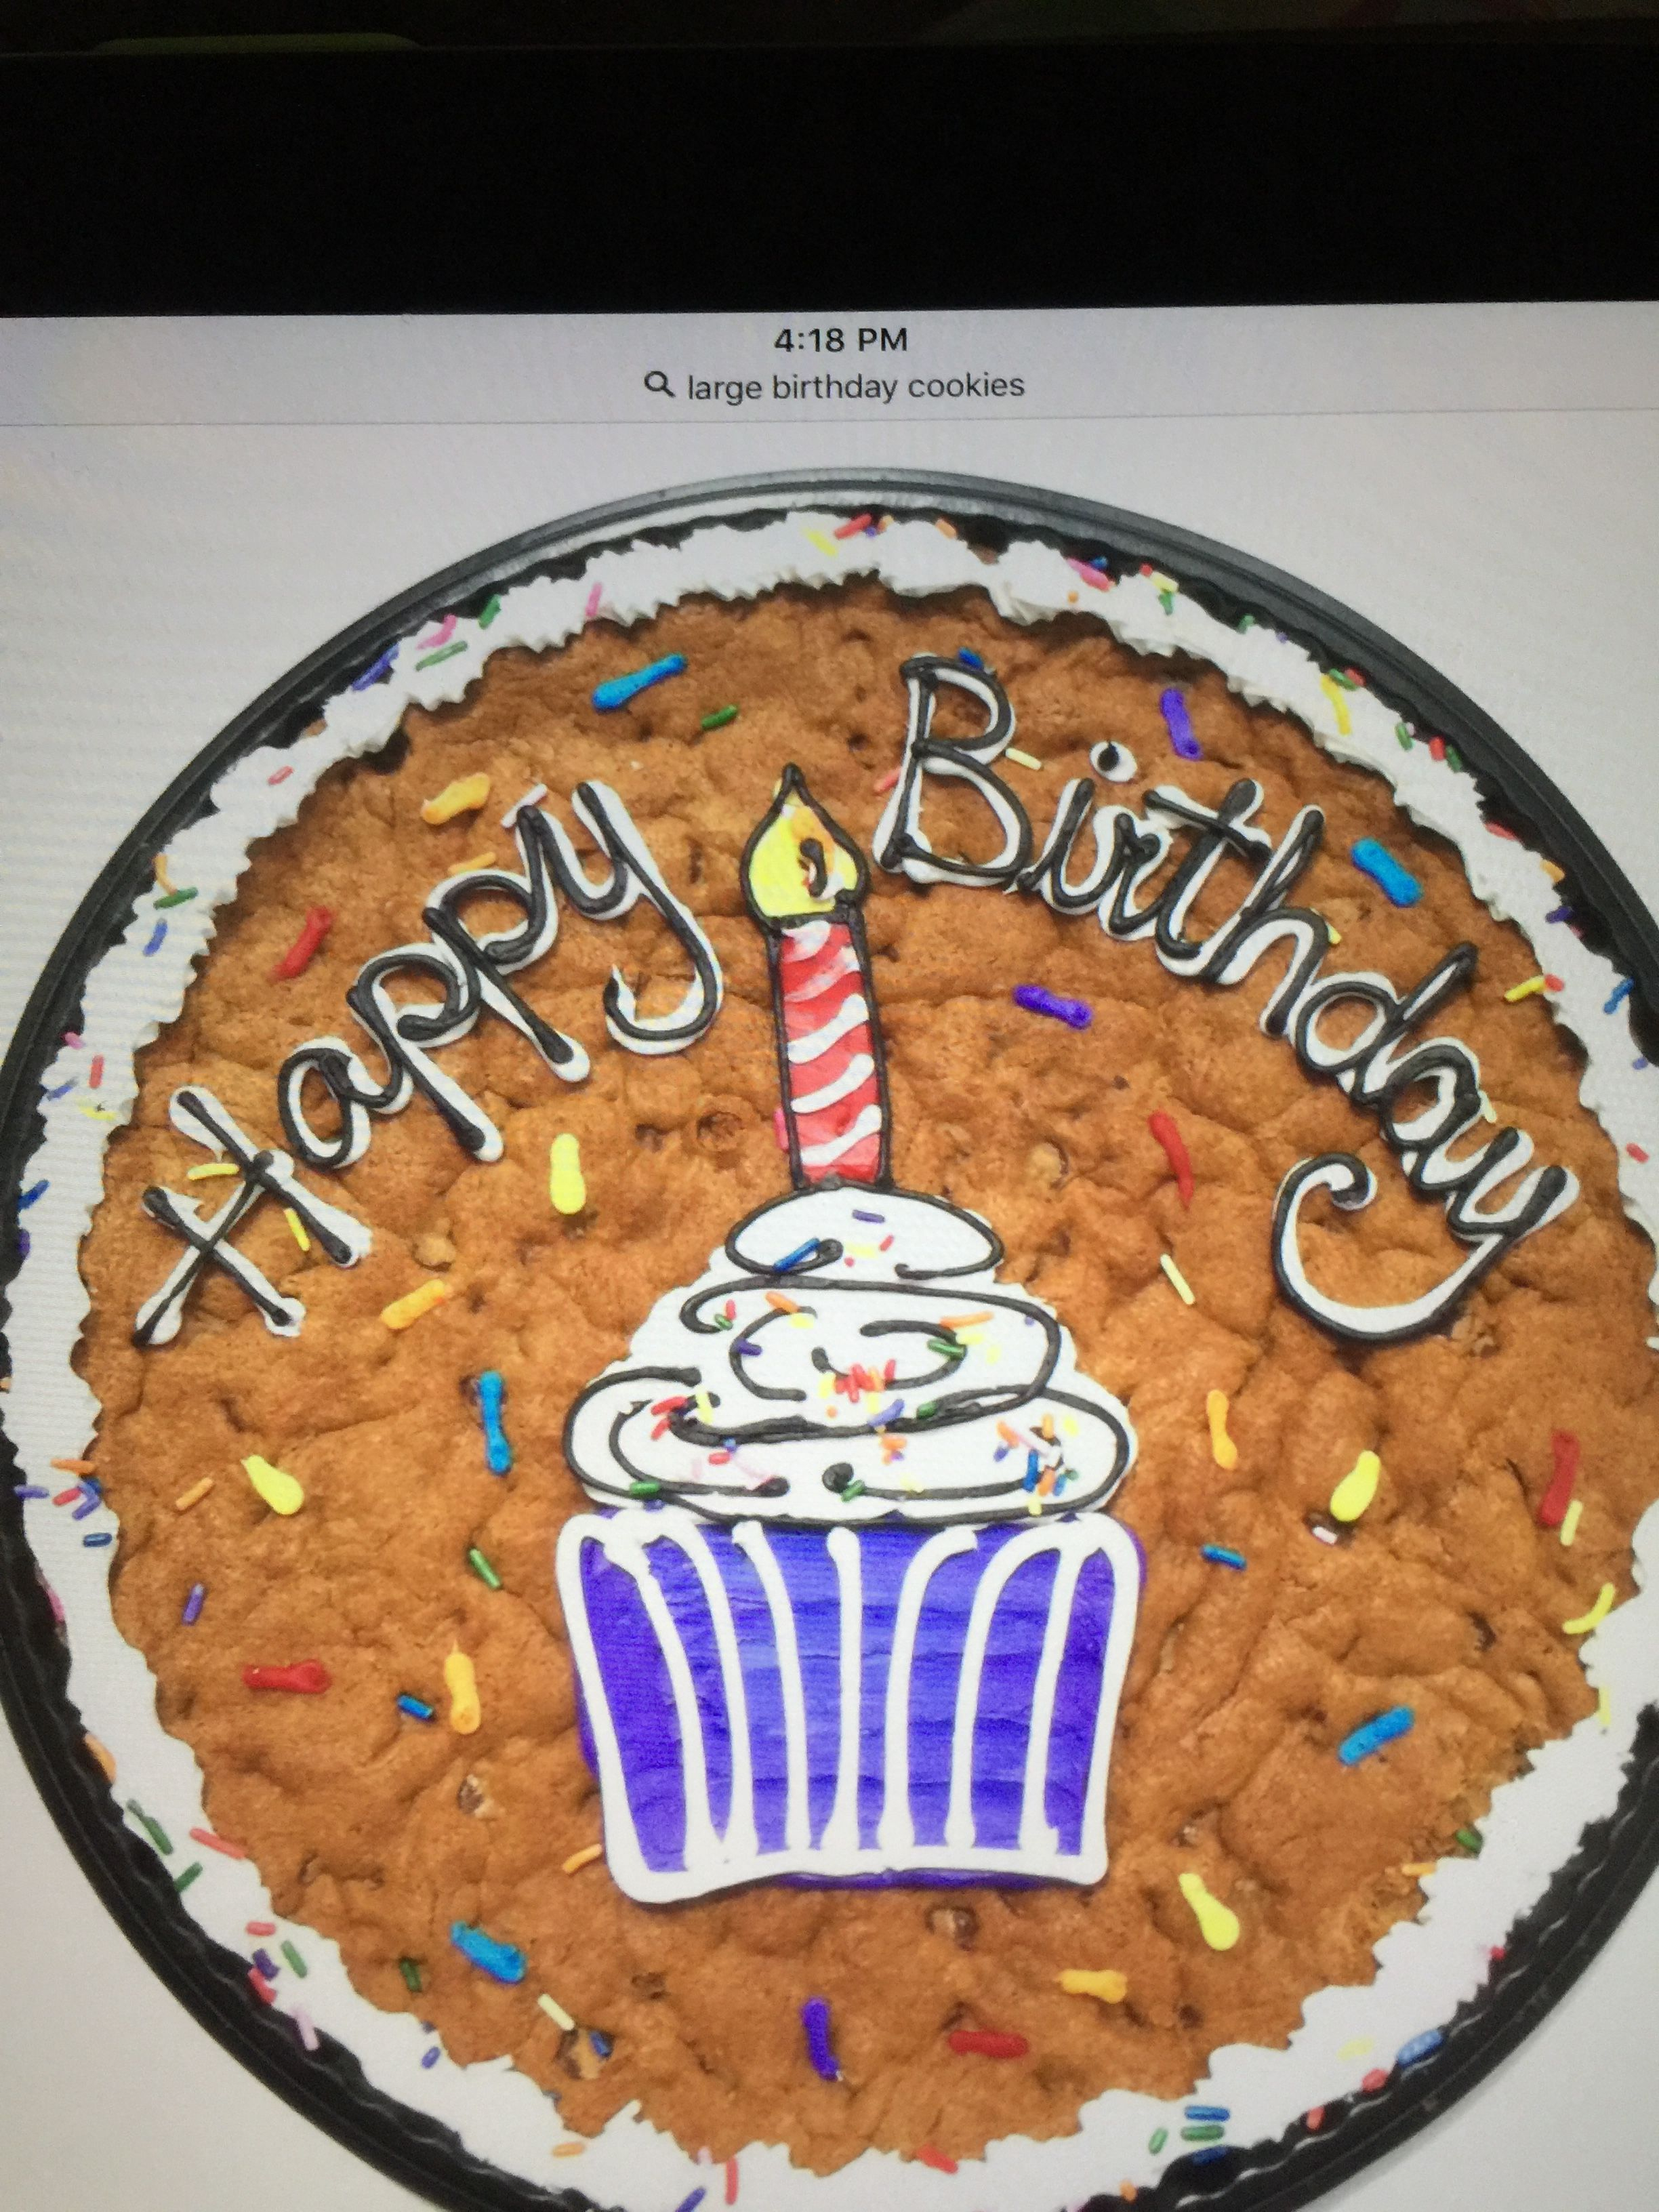 3264 In 30 Great Photo Of Chocolate Chip Cookie Birthday Cake